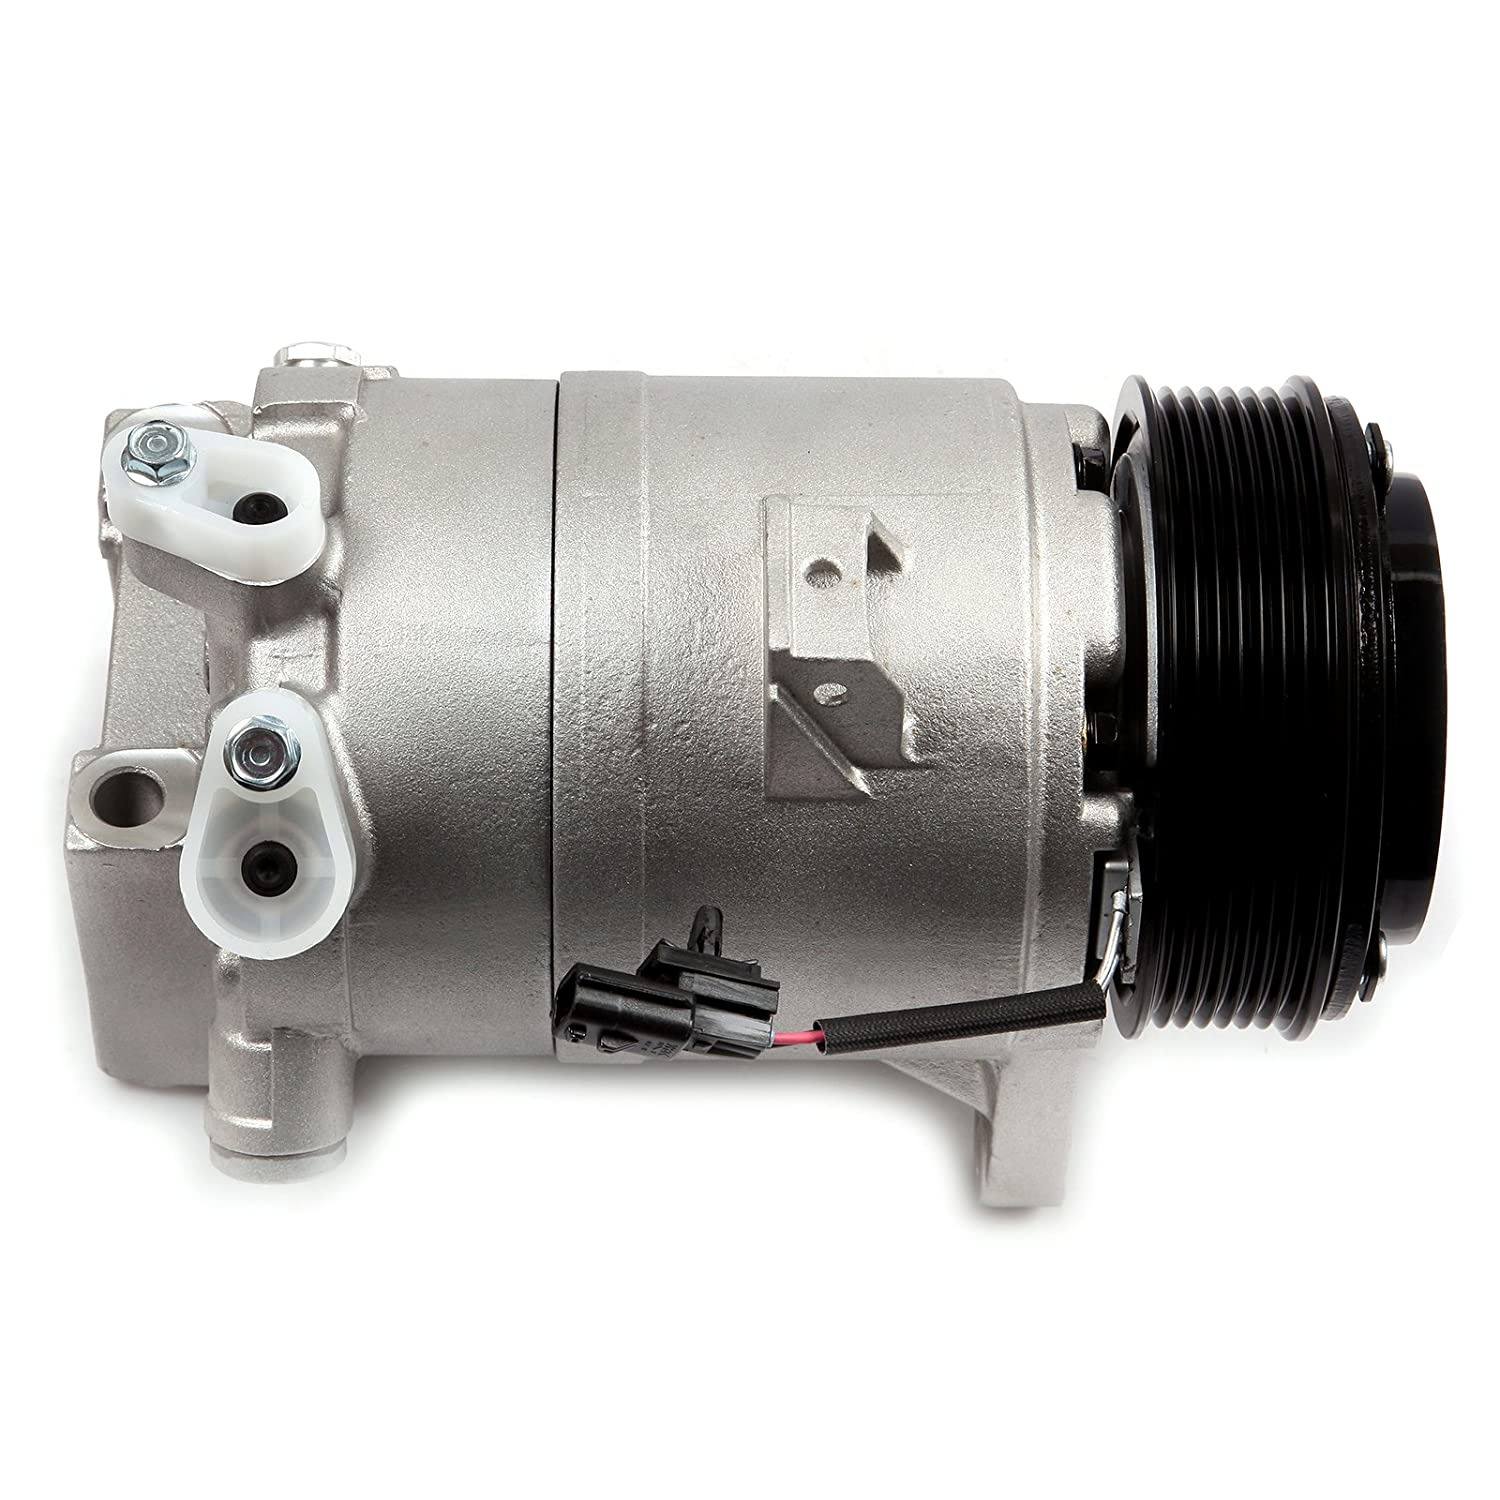 SCITOO Compatible with CO 11319C A//C Compressor and cluthche fit 2011 2012 2013 2015 2015 3.5 L